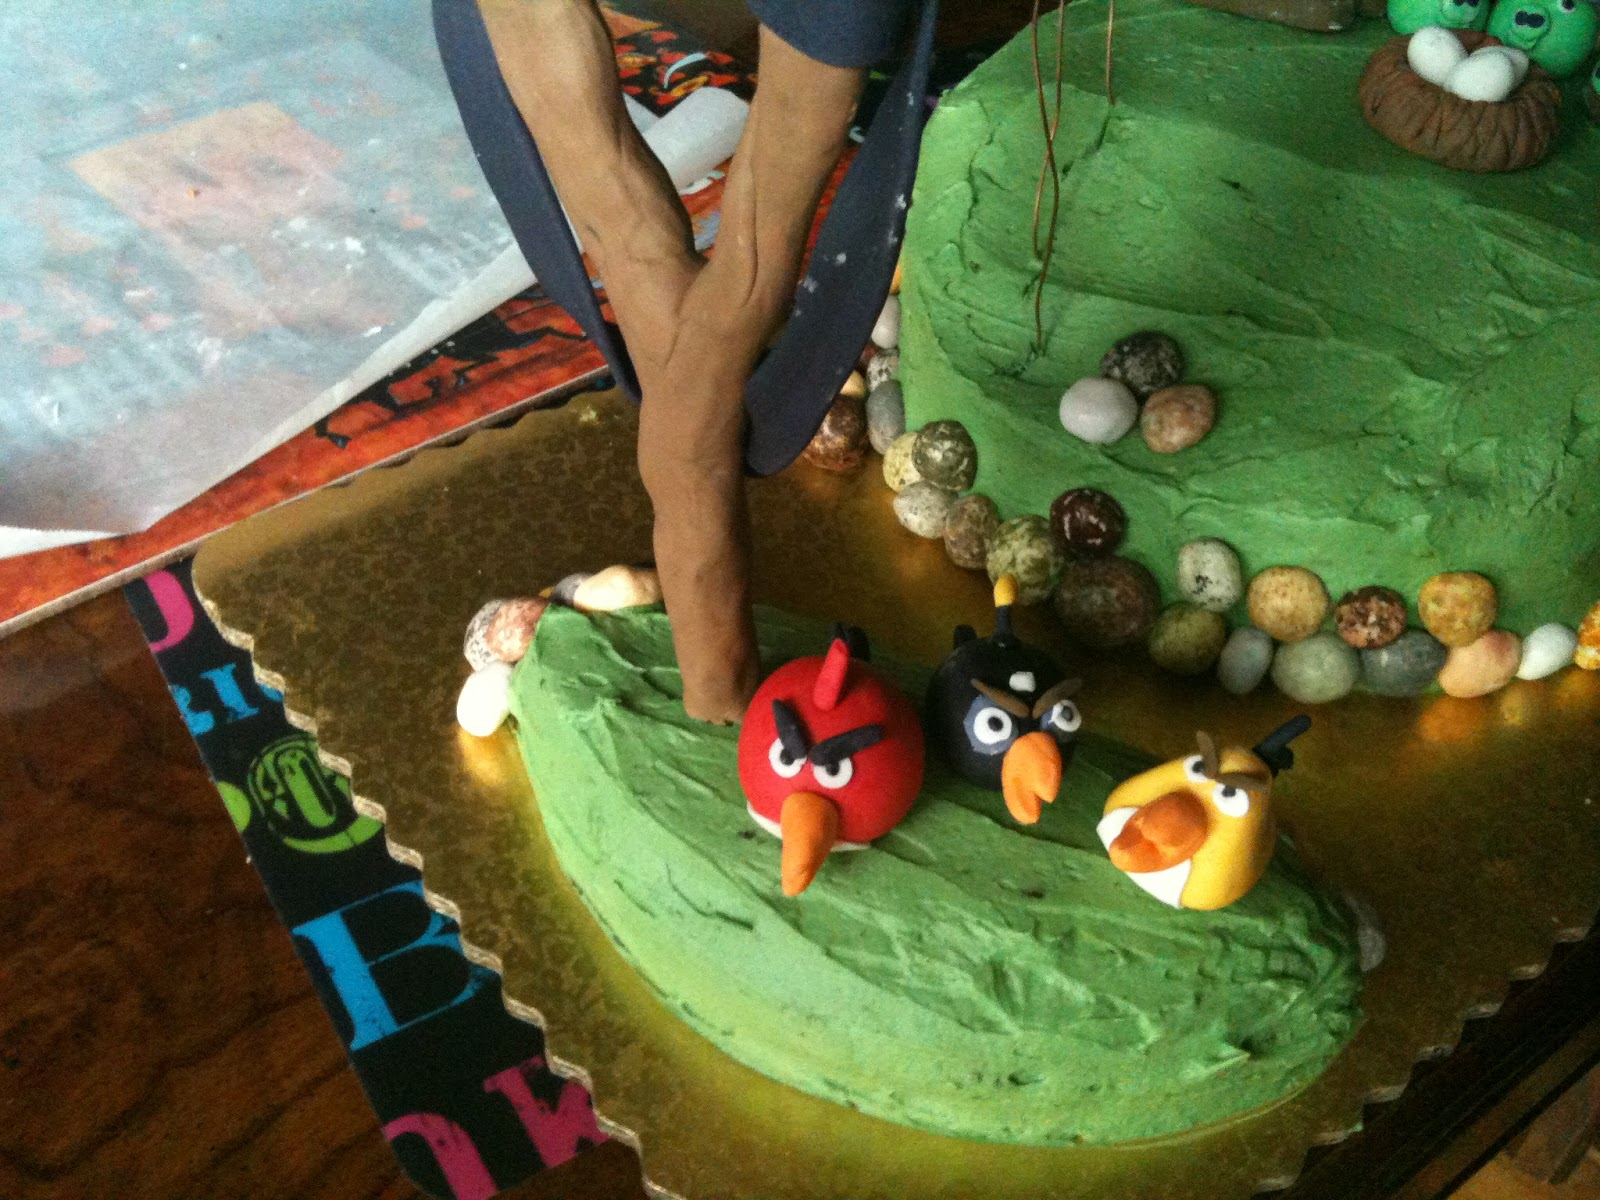 7 Year Old Birthday Cakes http://bumblingbuddingbaker.blogspot.com/2012/04/7-year-olds-birthday-cake.html